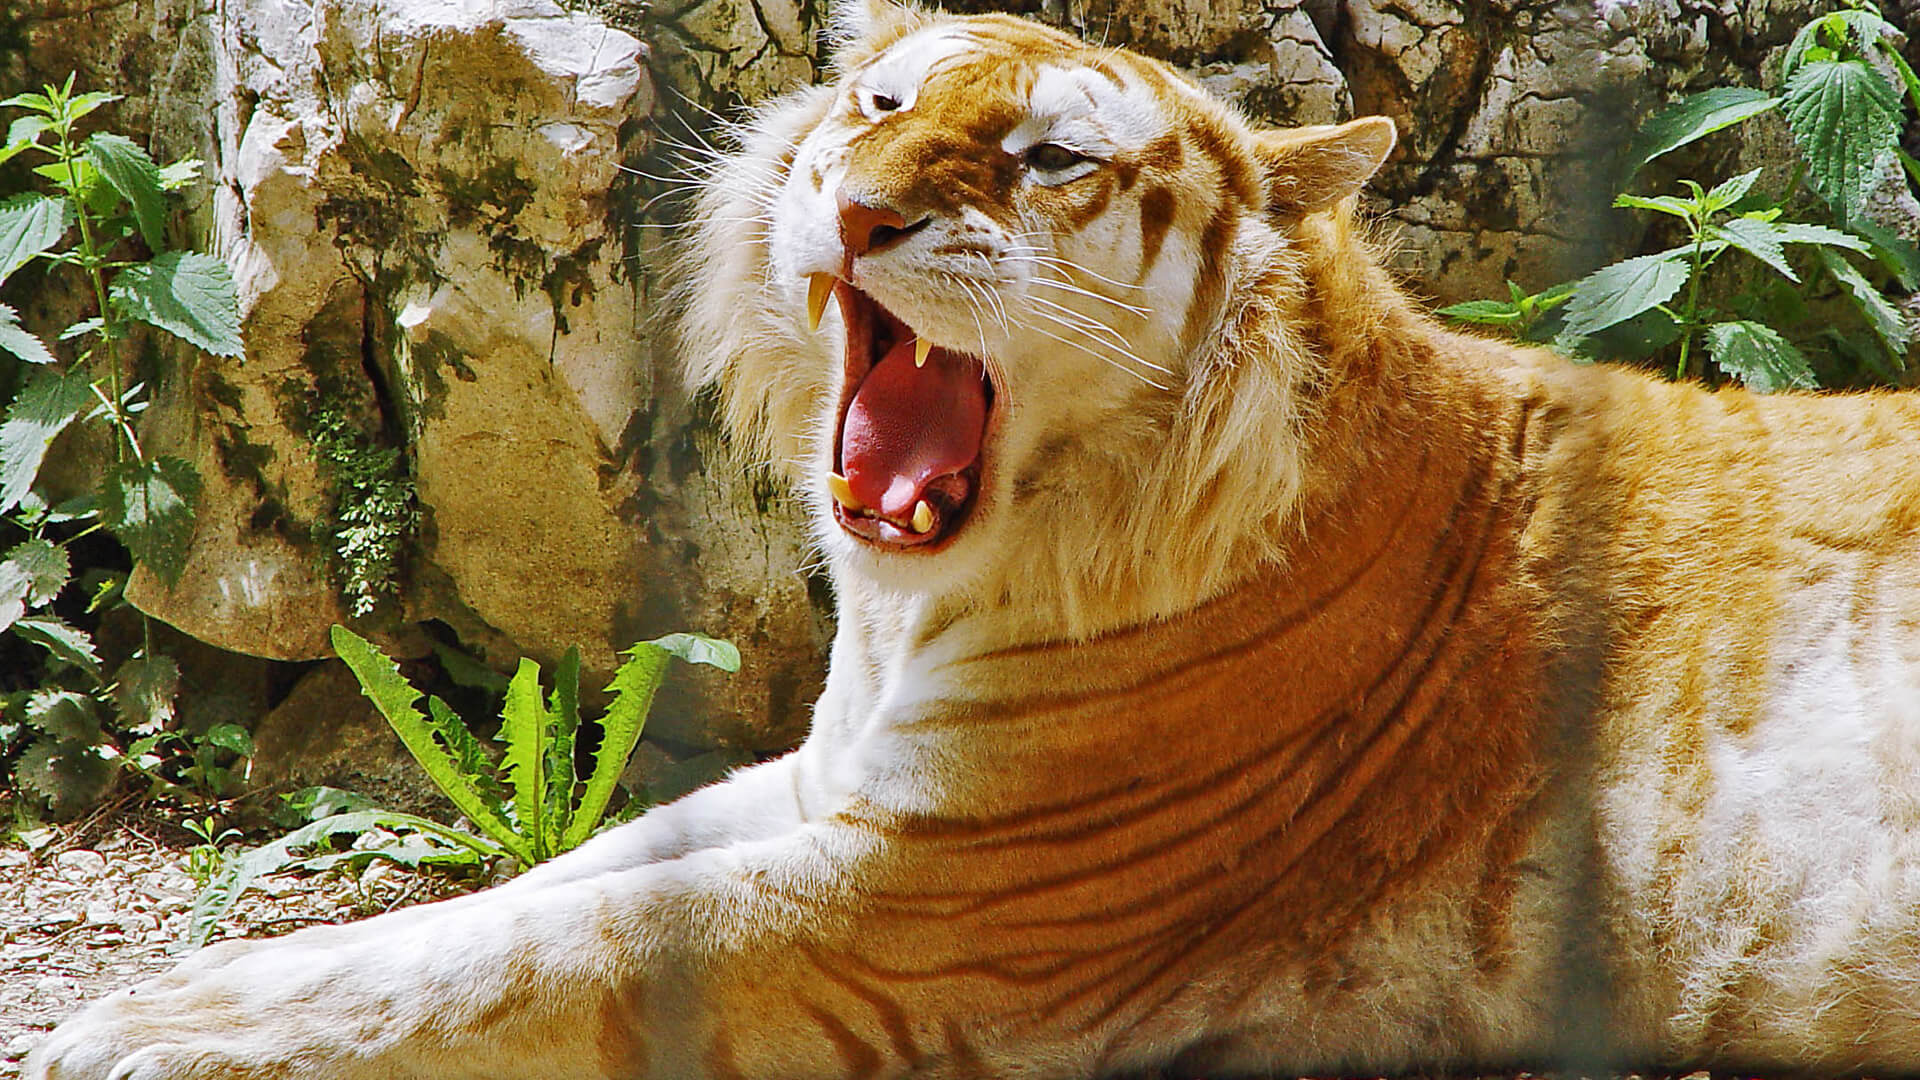 hq/hd/3d): golden tiger wallpapers